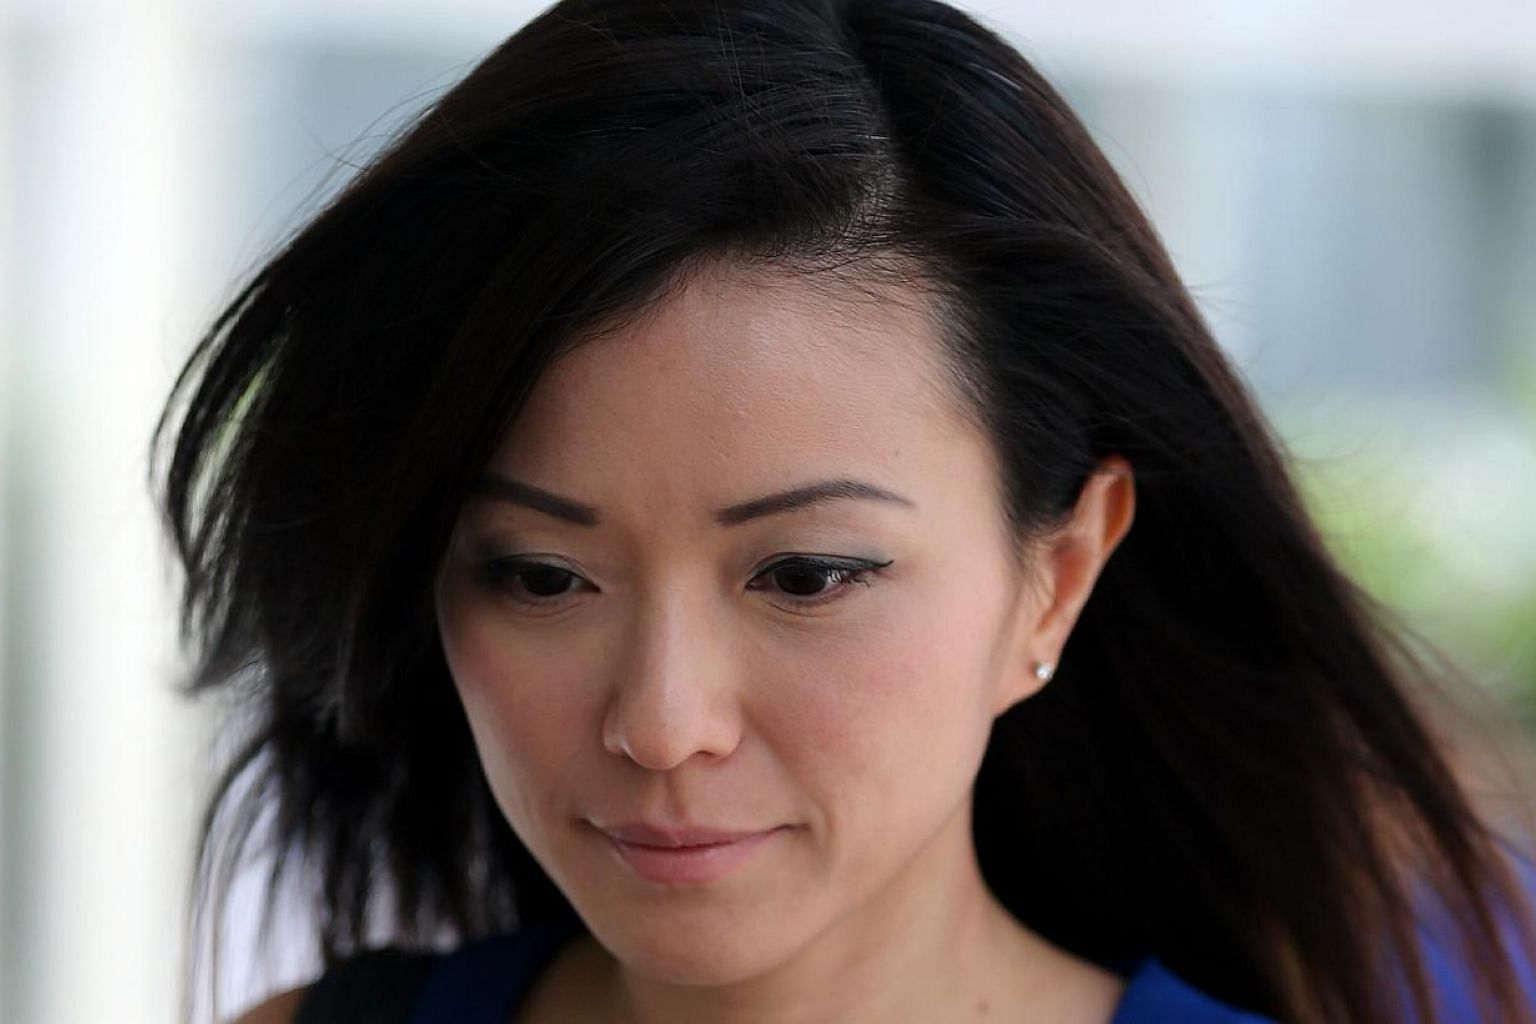 Serina Wee disagreed she knew the bonds were a sham and that she had knowingly conspired with the others to misappropriate church funds. -- ST PHOTO: WONG KWAI CHOW